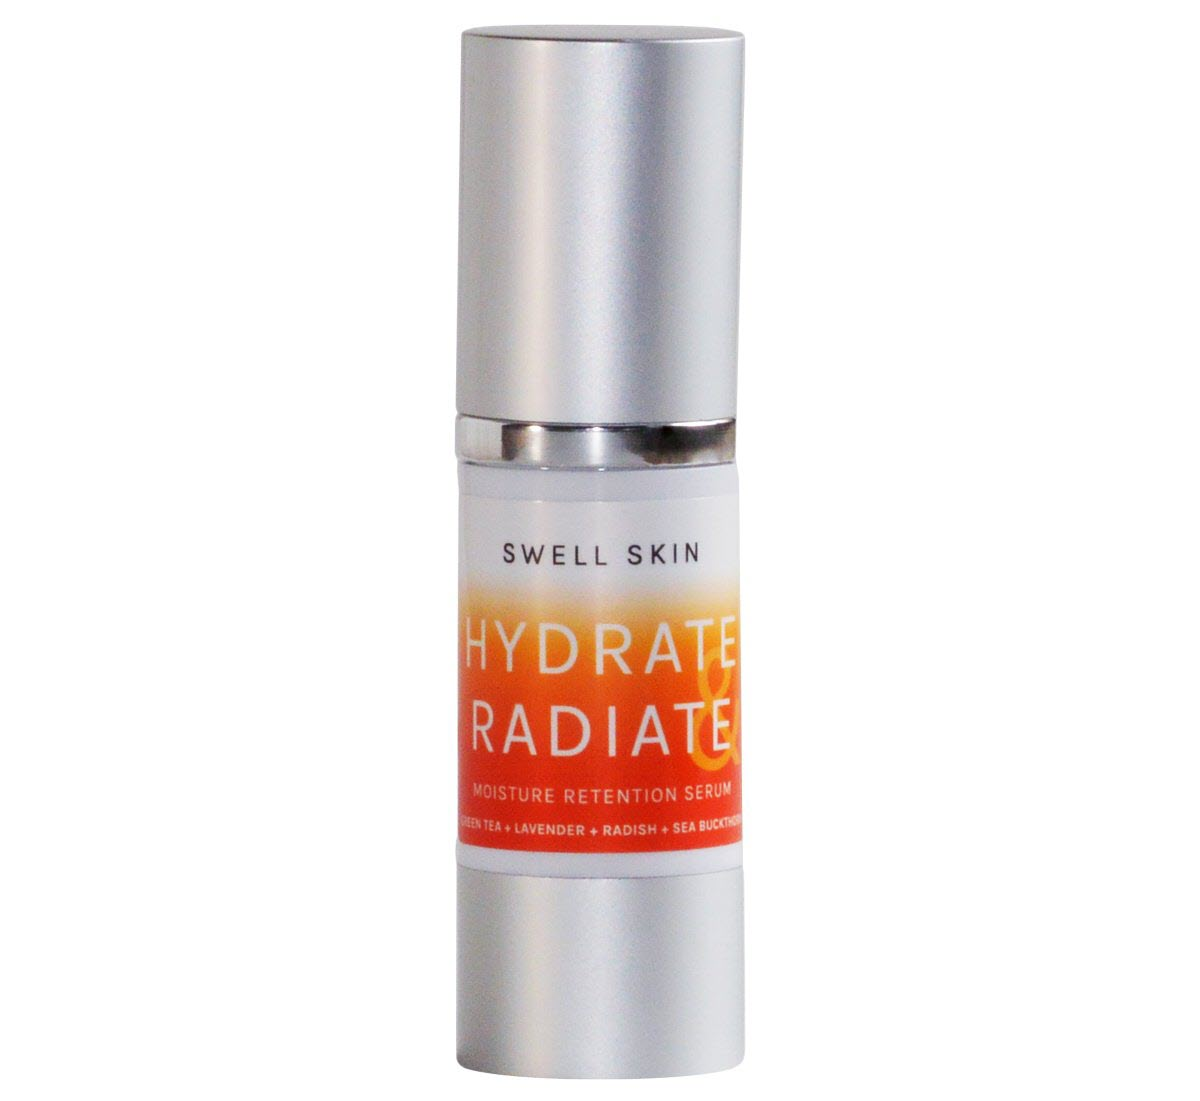 HYDRATE & RADIATE Moisture Retention Serum